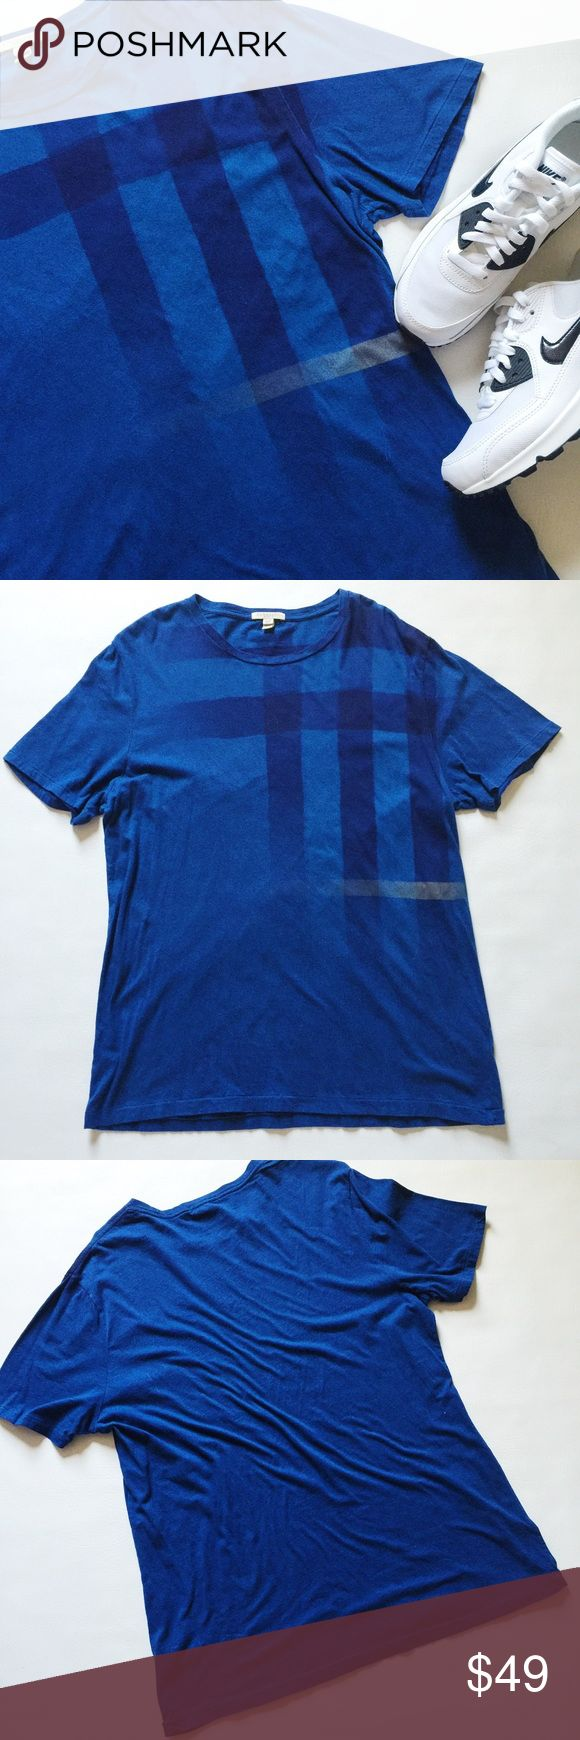 """Burberry Abstract Check Graphic Tee Burberry Abstract Check Tee in royal blue featuring iconic graphic print.  Sporty and casual!  Pre-loved but in excellent condition.  No holes, stains or damage.  Size XXL but runs smaller like a L.  Please verify measurements to ensure correct fit.  Measurements laying flat: Armpit to armpit: 22"""" Waist (across): 20"""" Total length: 29.5""""  Sleeve length: 9.5"""" Burberry Shirts"""